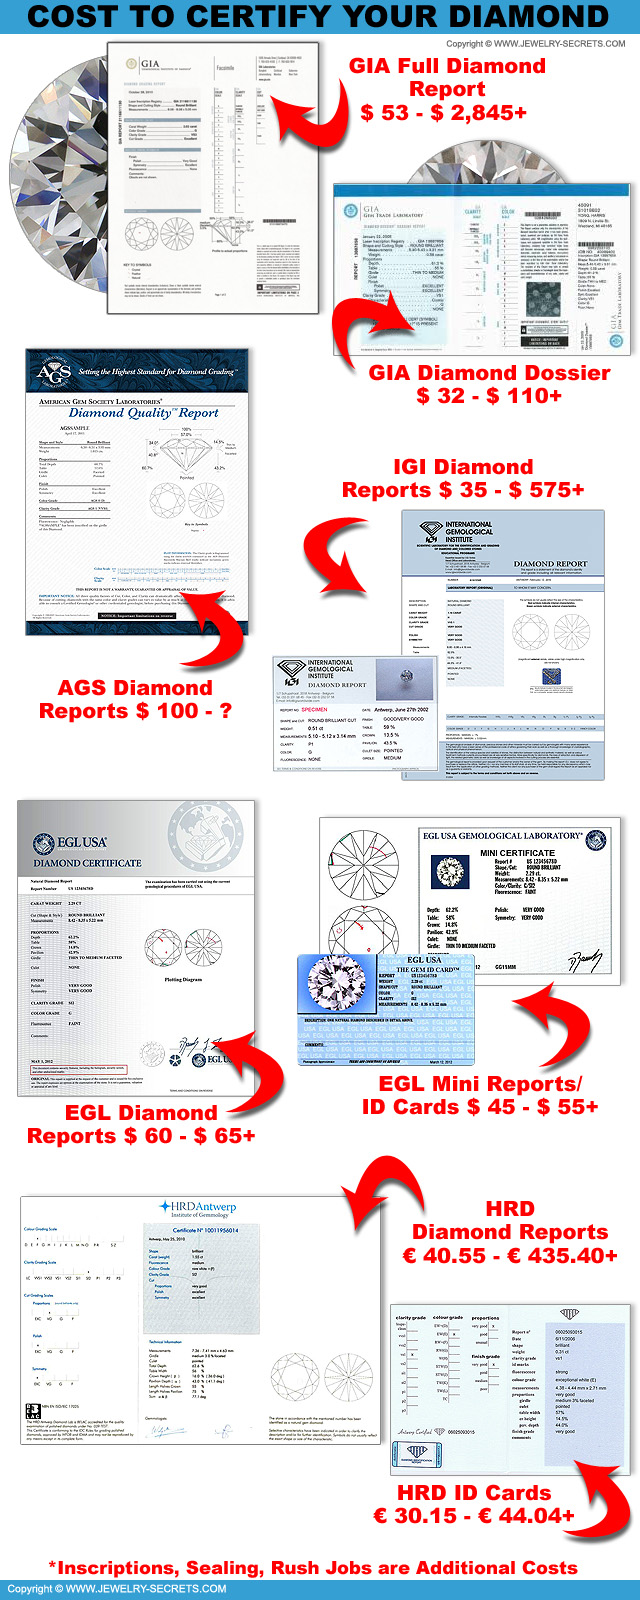 The Cost To Certify A Diamond